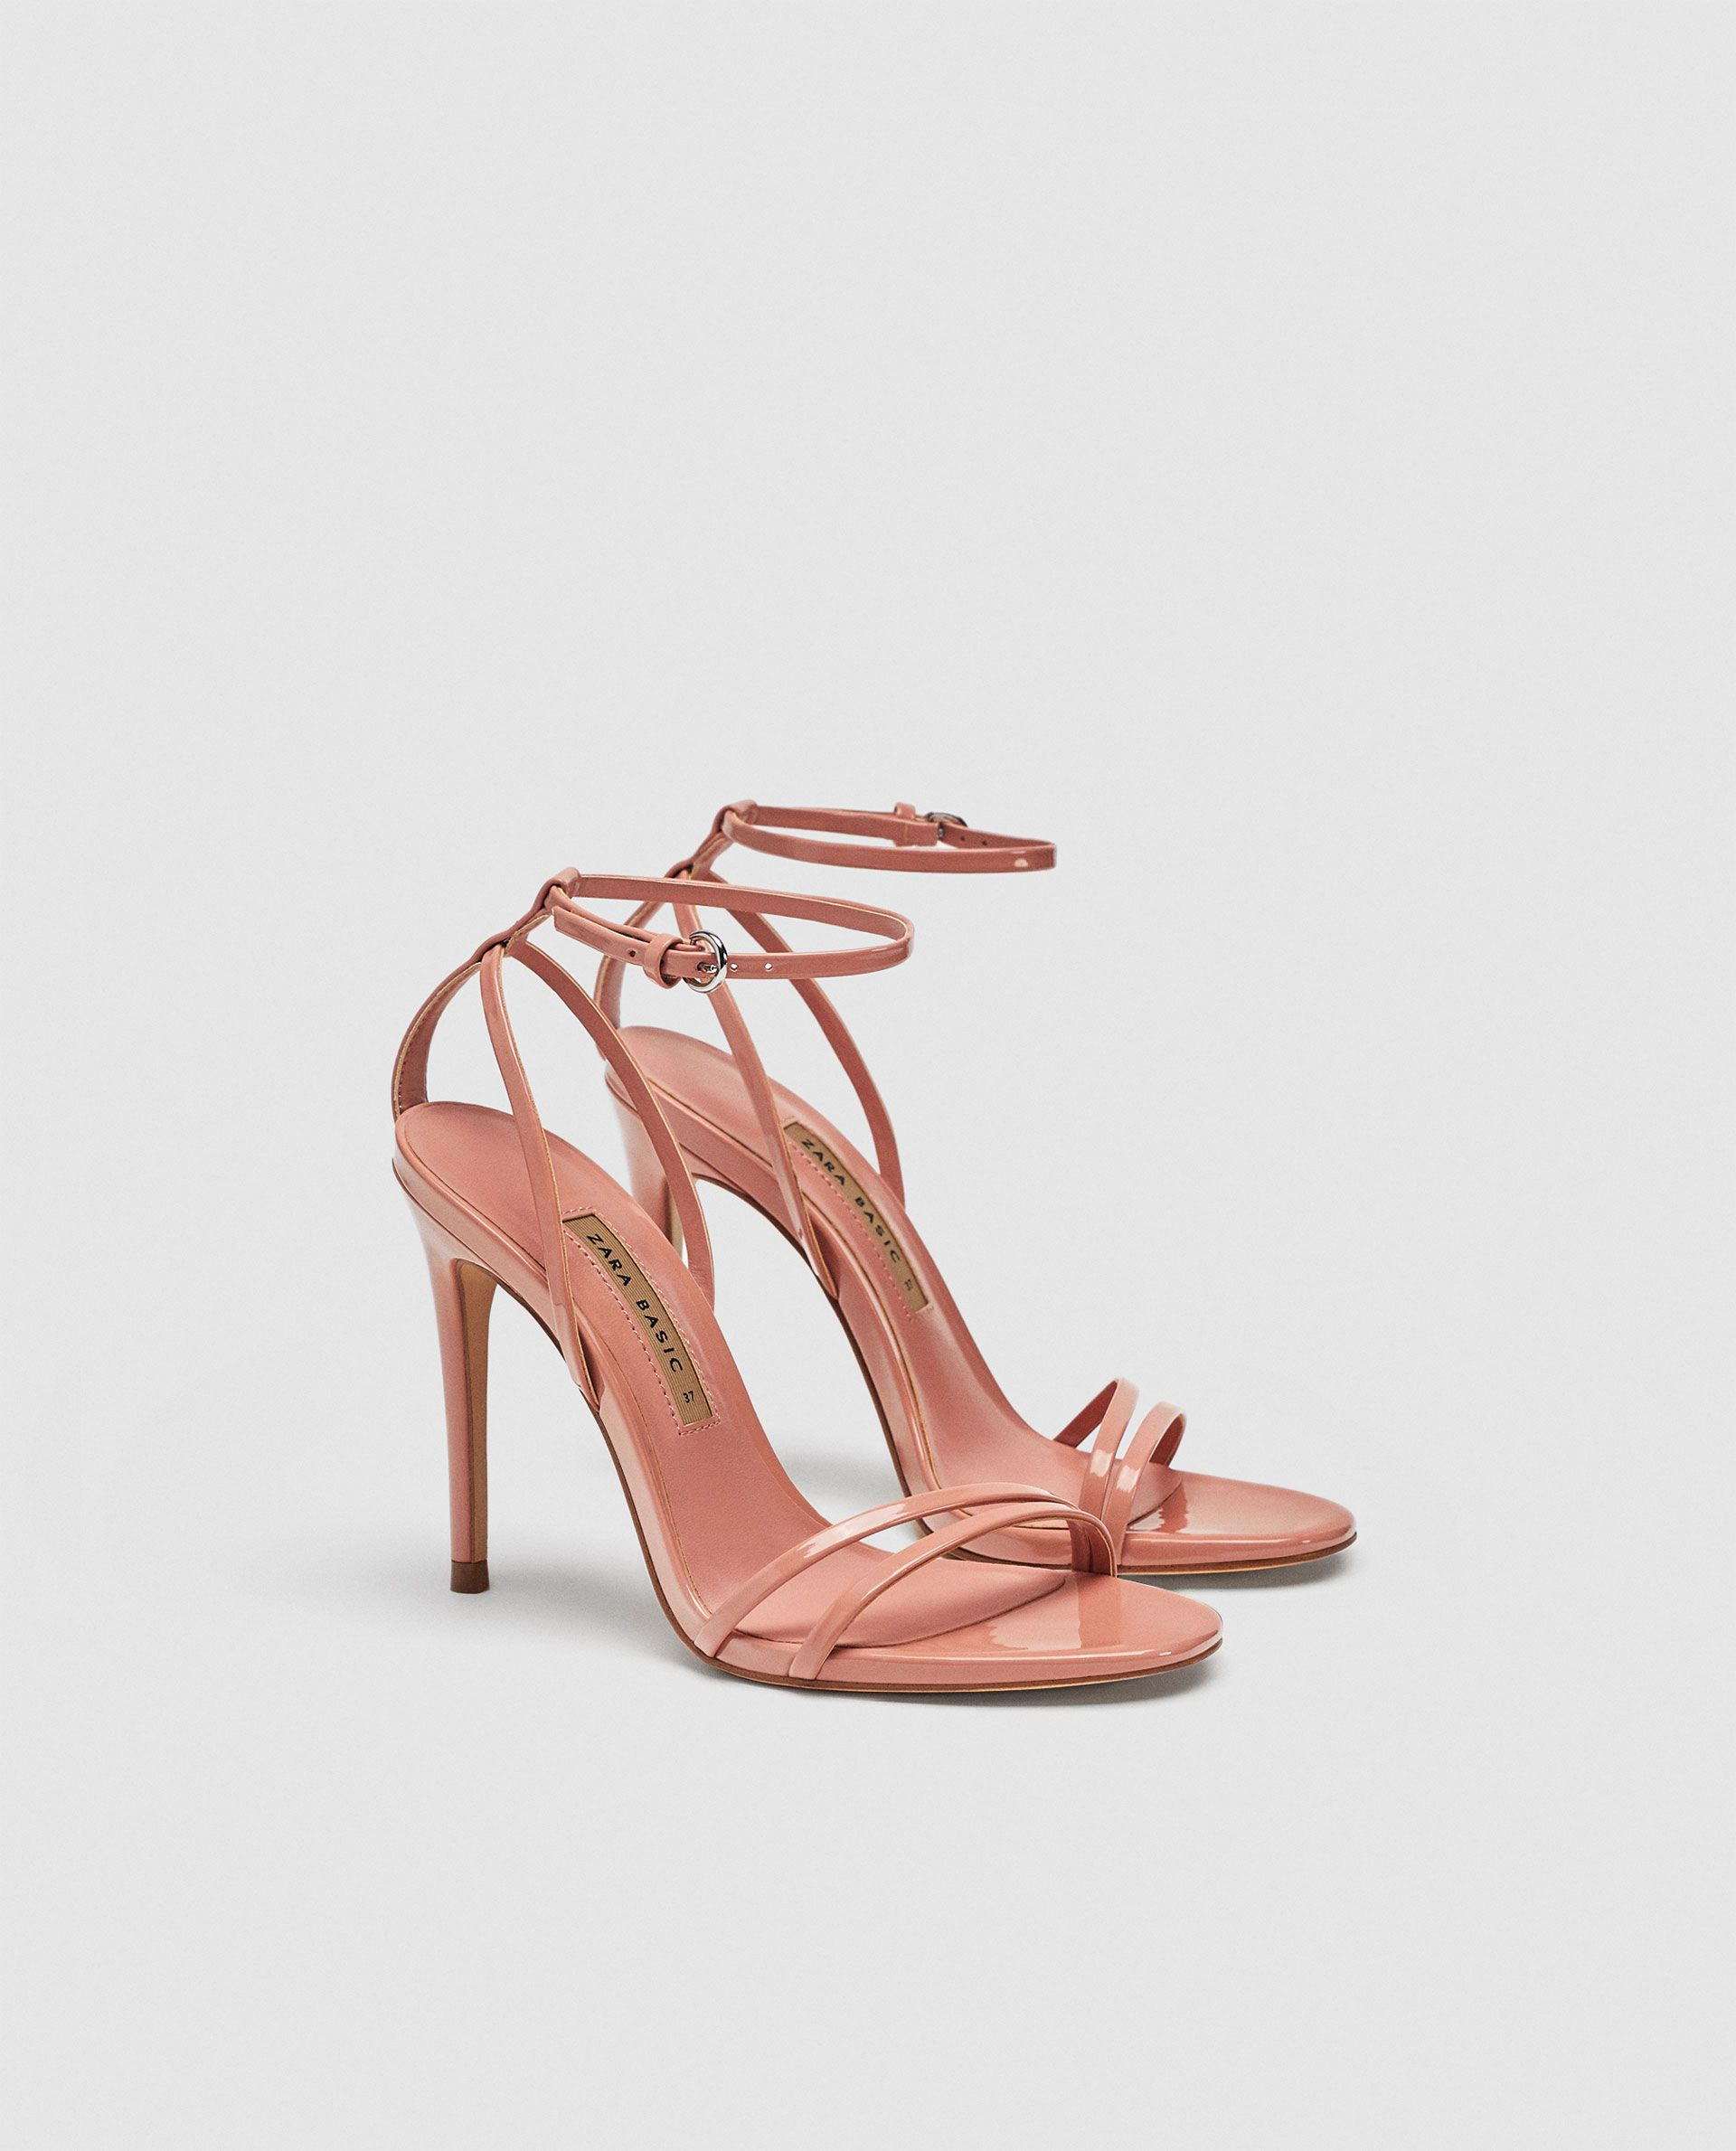 317b55fb77982 ZARA - SALE - HEELED SANDAL WITH LAMINATED STRAPS